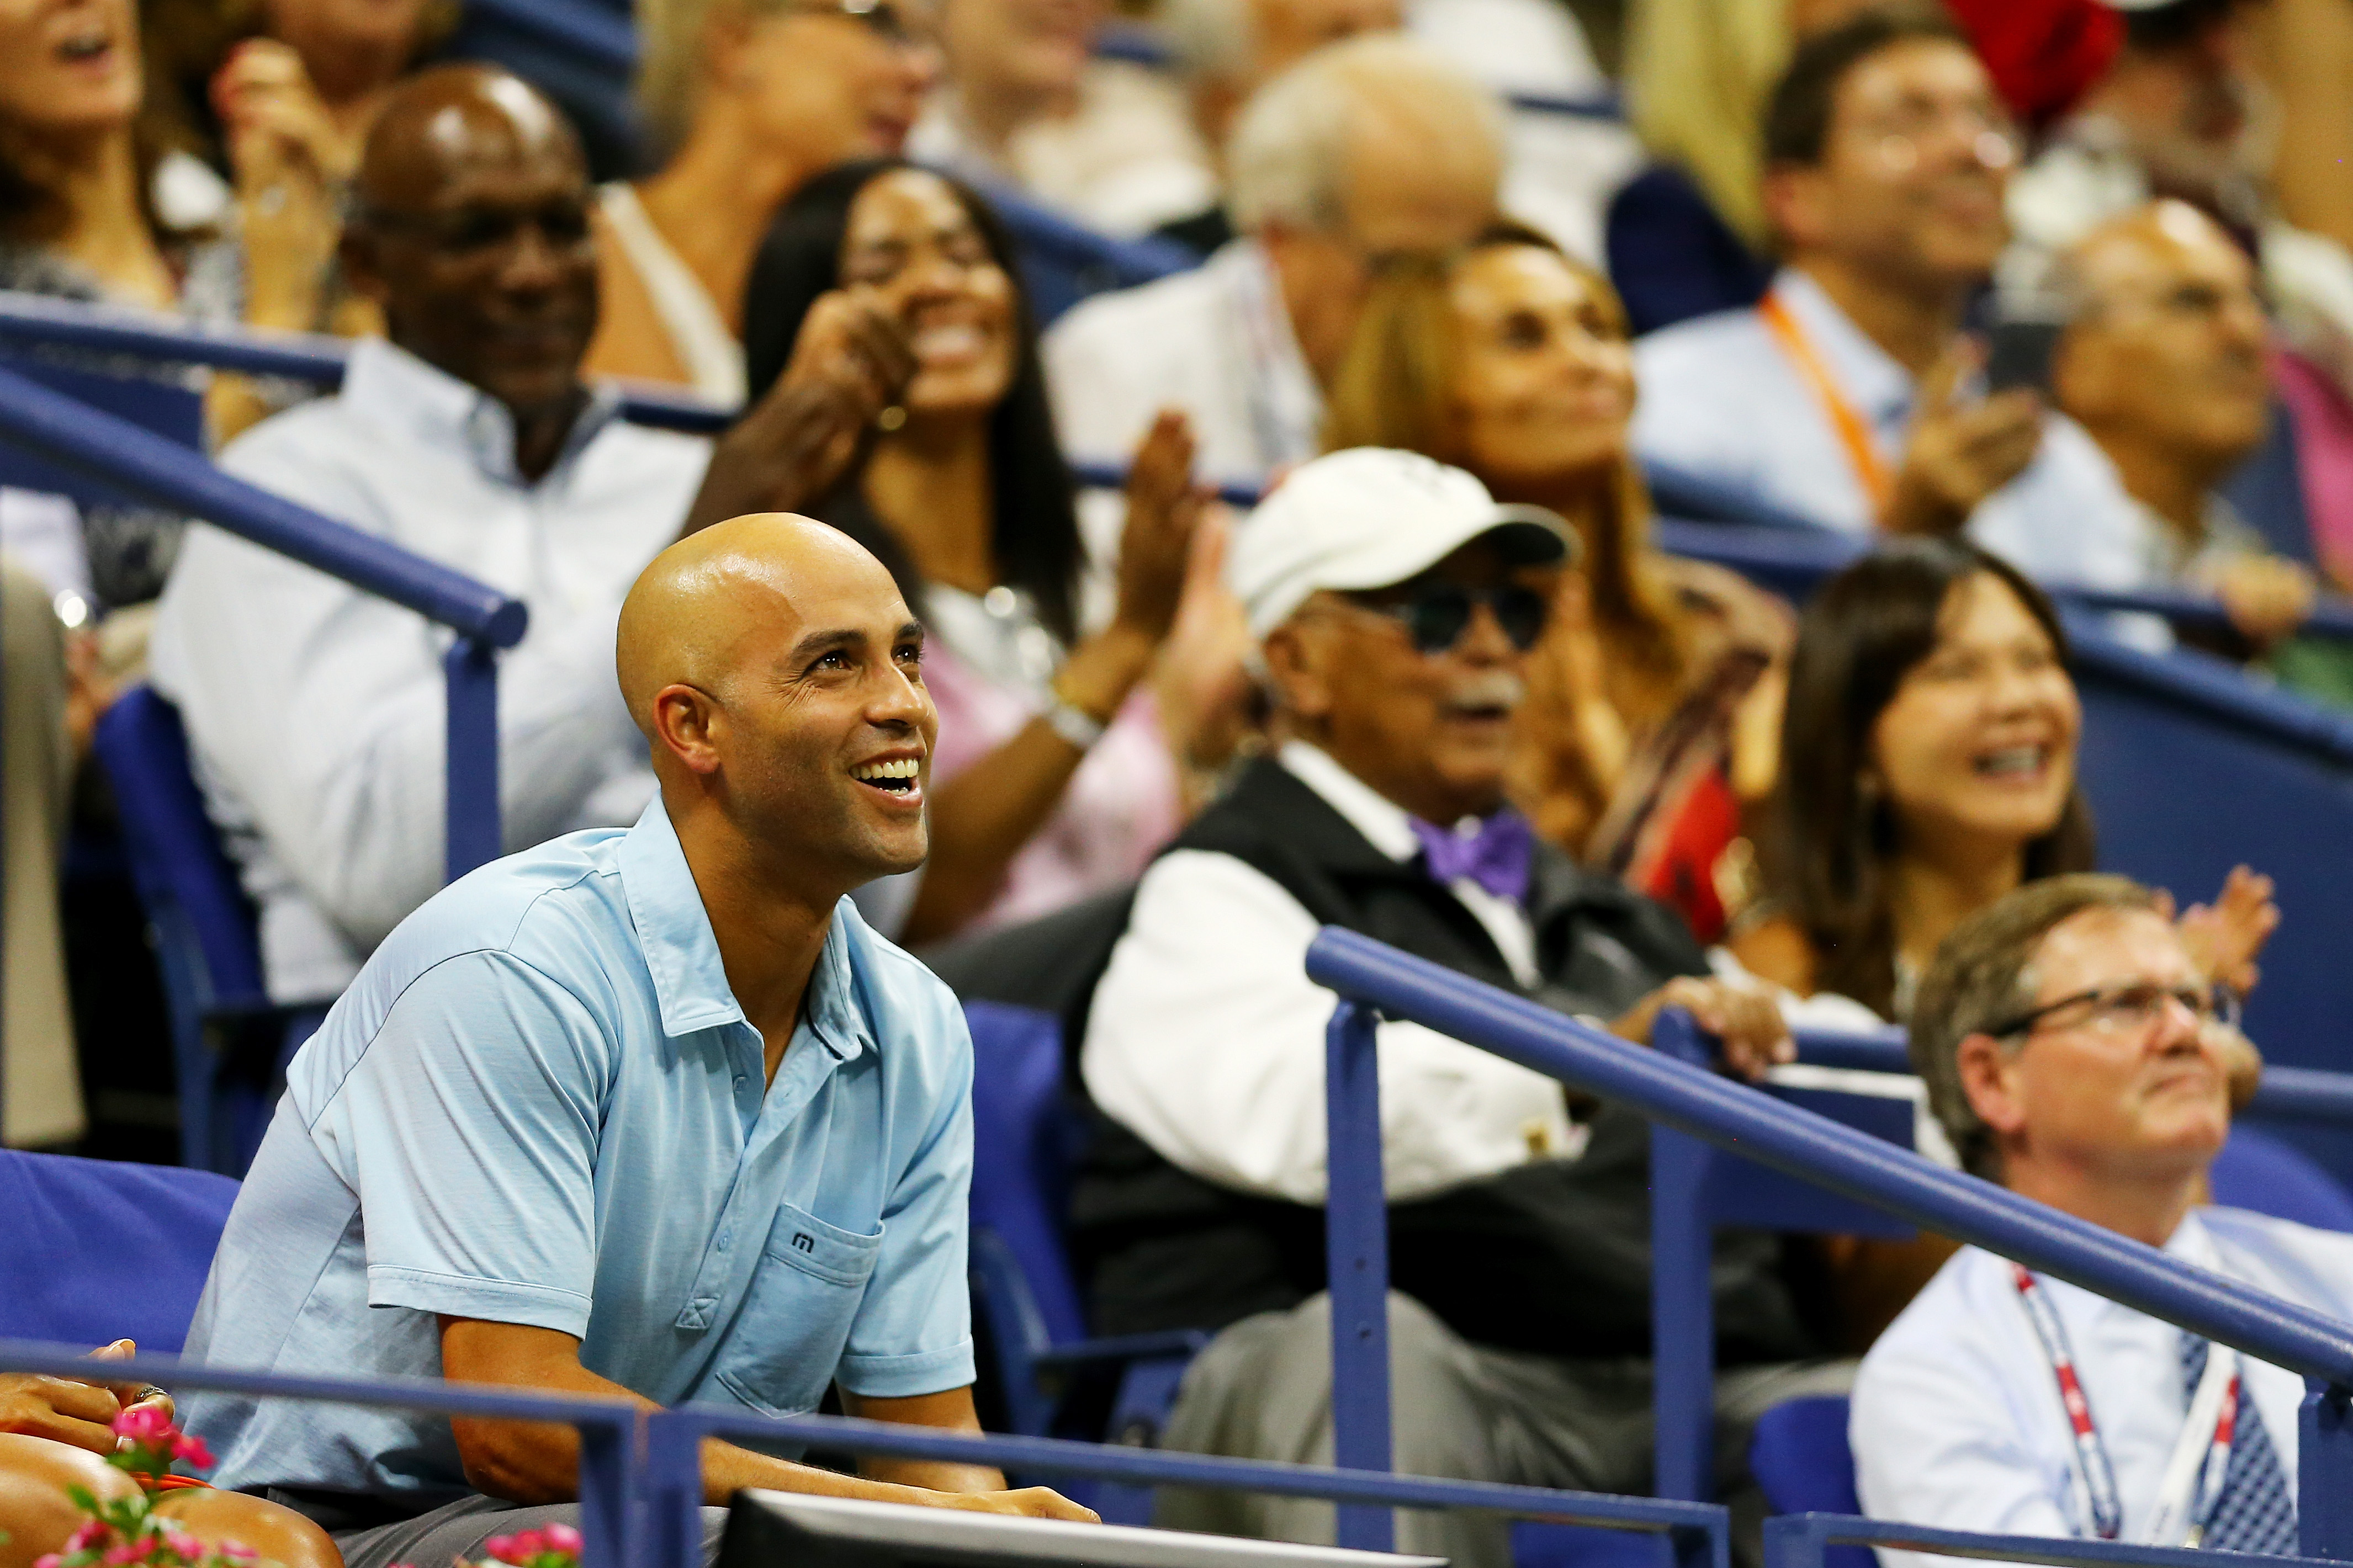 James Blake attends the Men's Singles Semifinals match at the U.S. Open in Flushing, Queens. (Photo: Maddie Meyer/Getty Images)